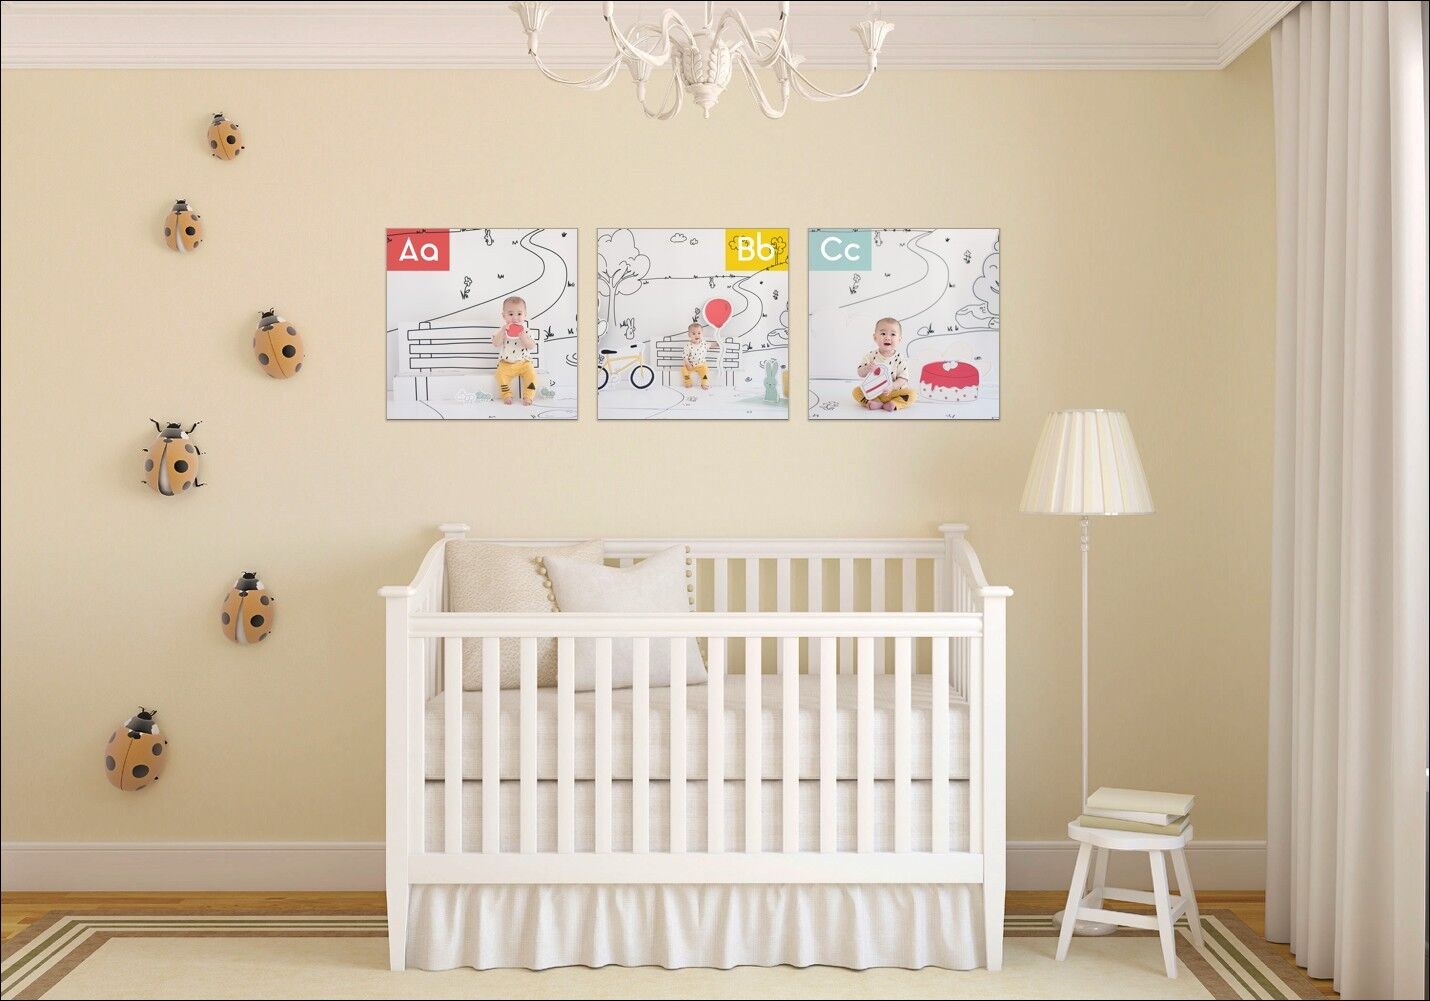 Photo of nursery with white crib and three ABCsons posters above the crib.